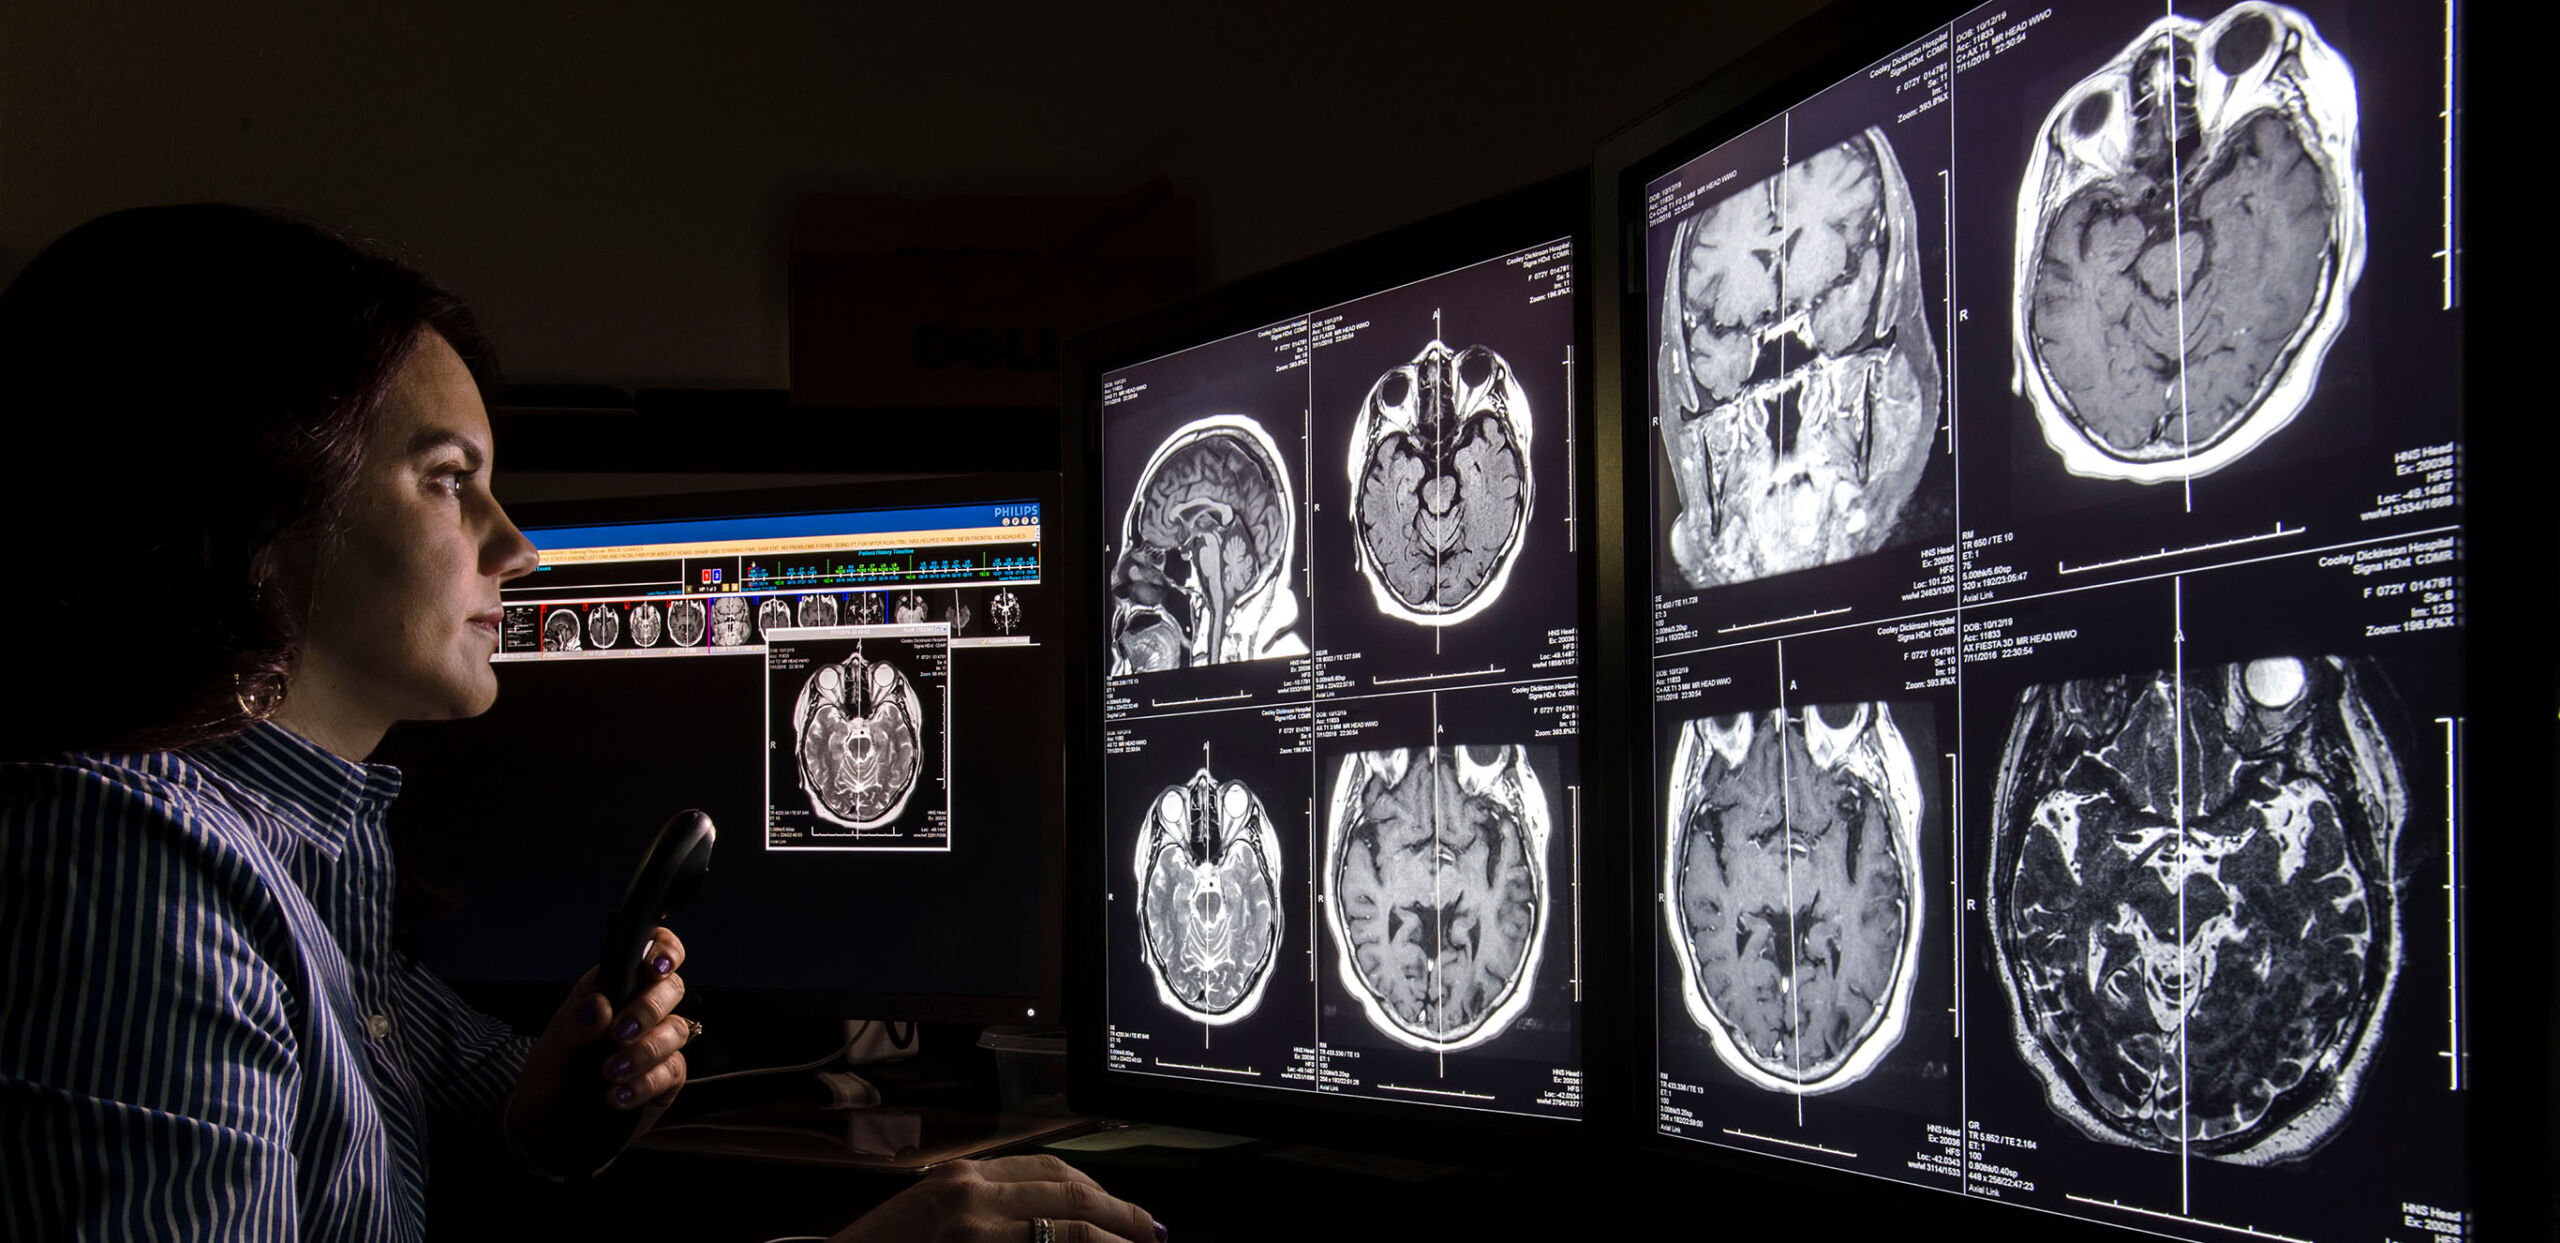 Radiologist Brooke Breen, MD, dictates notes while reviewing MRI scans of a patient's brain at Cooley Dickinson Hospital, 30 Locust Street, Northampton, MA 01060.